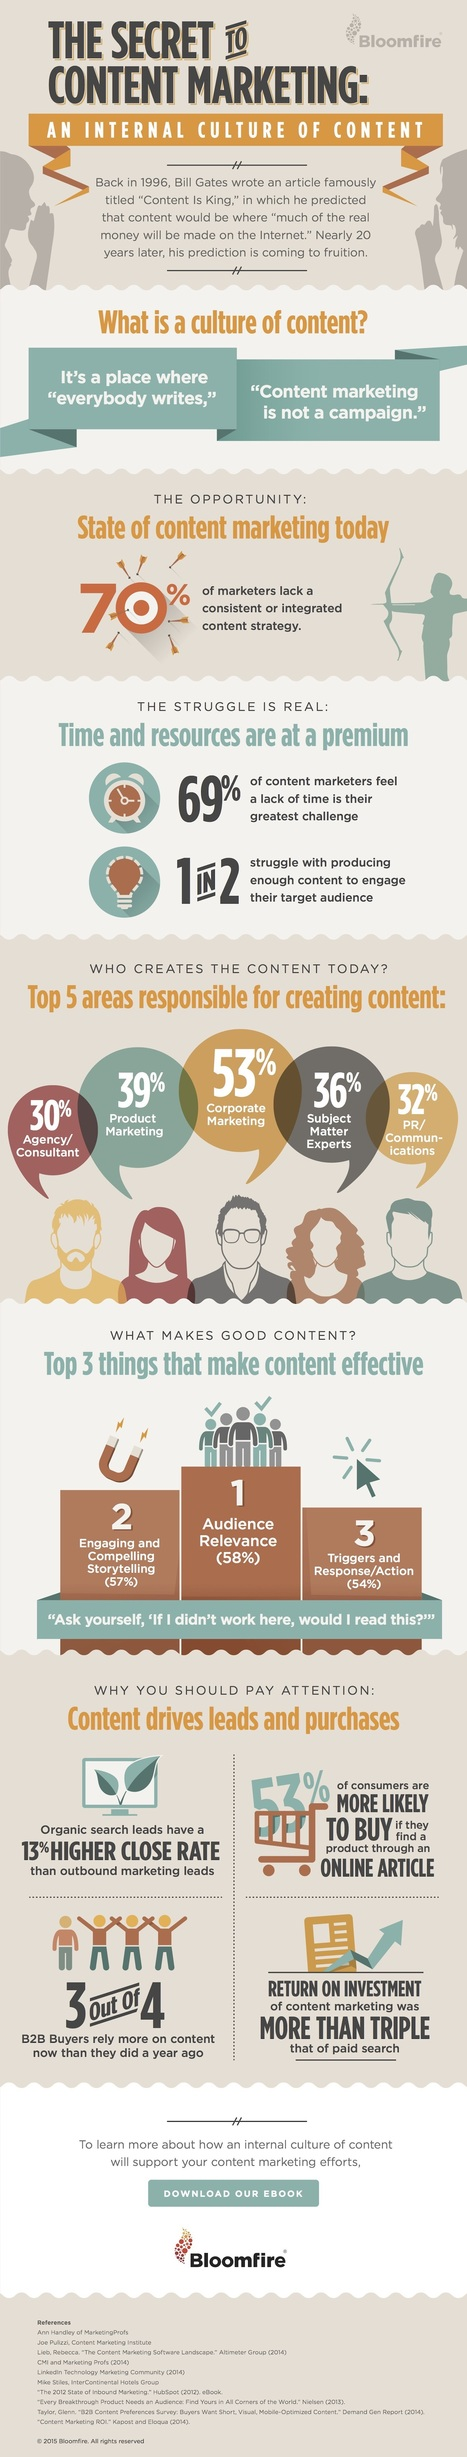 INFOGRAPHIC: The Secret to Content Marketing | MarketingHits | Scoop.it